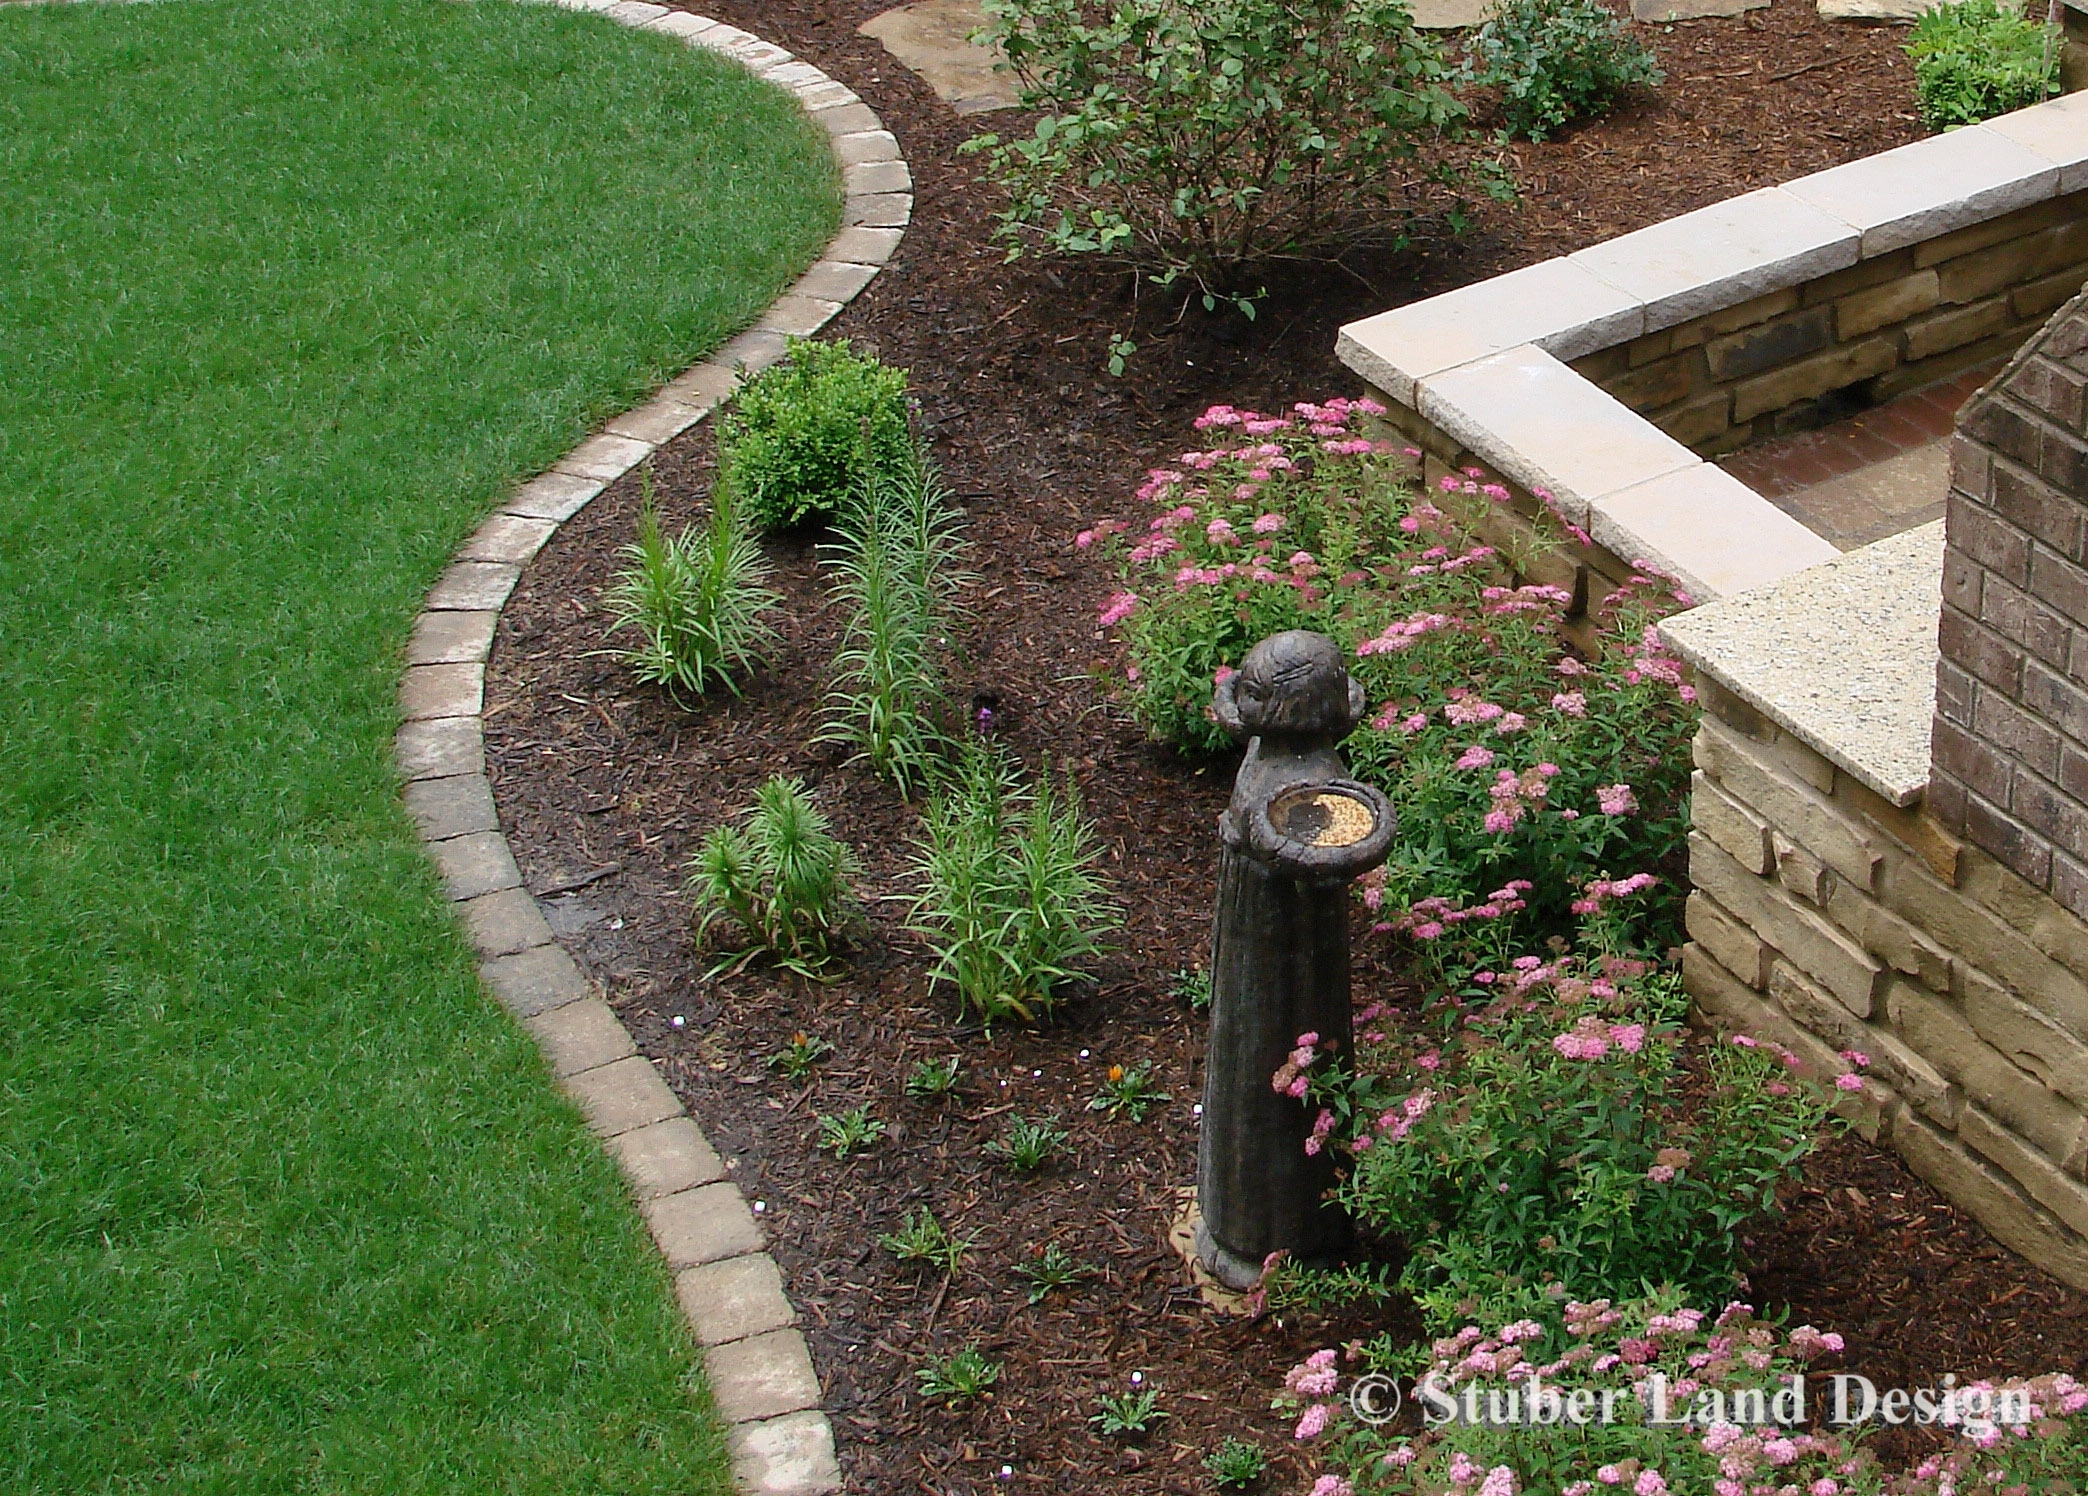 Image of: Paver Edging Creates A Good Clean Line To Transition From A Pertaining To Edging Landscaping Distinctive Edging Landscaping Style